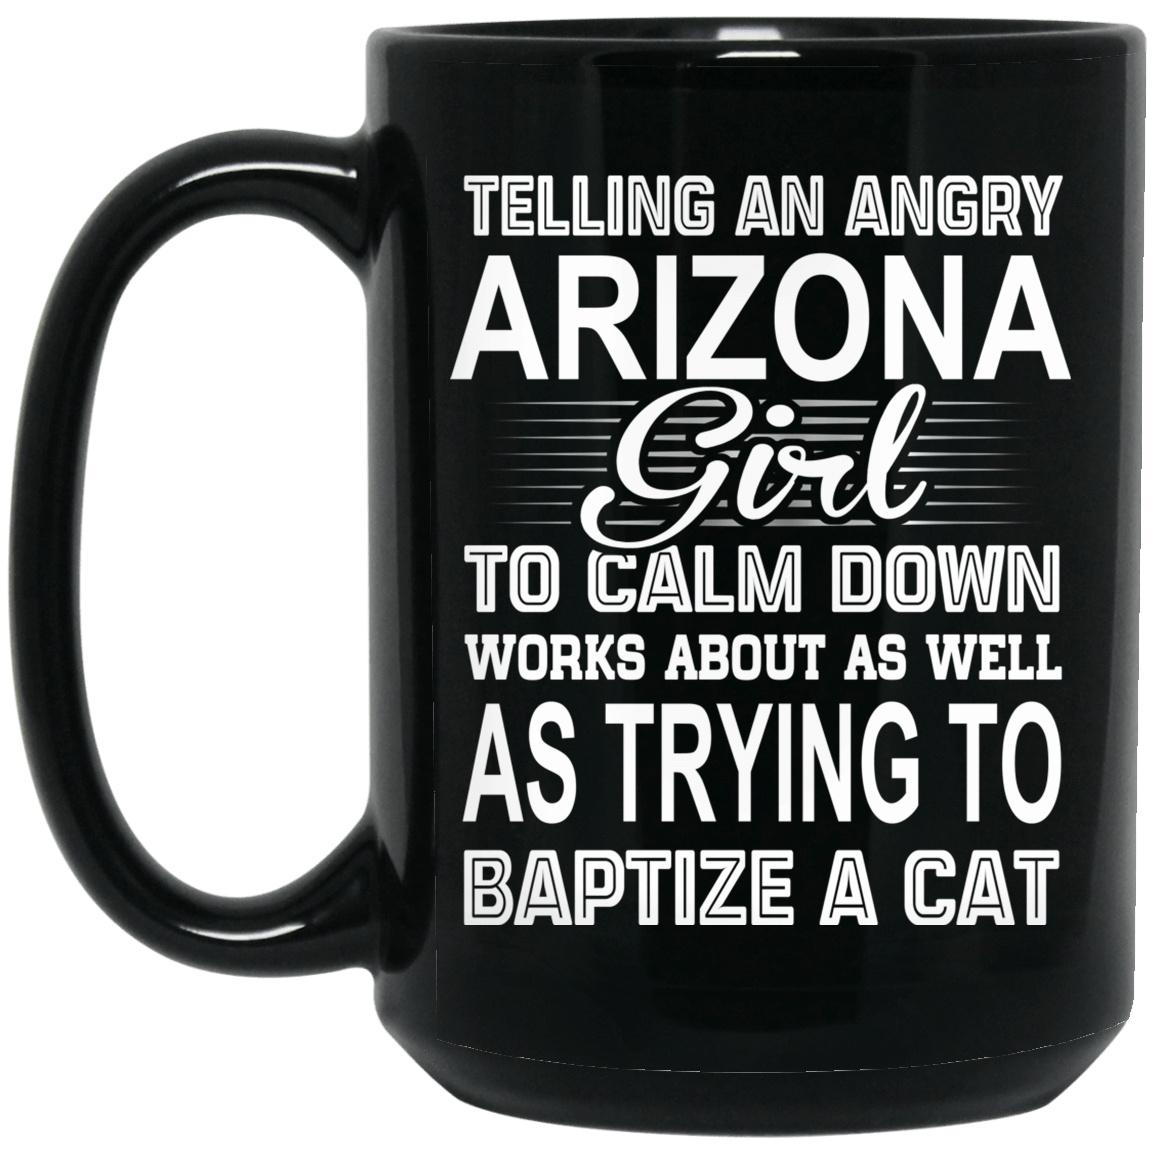 Telling An Angry Arizona Girl To Calm Down Works About As Well As Trying To Baptize A Cat Mug 1066-10182-76151927-49311 - Tee Ript